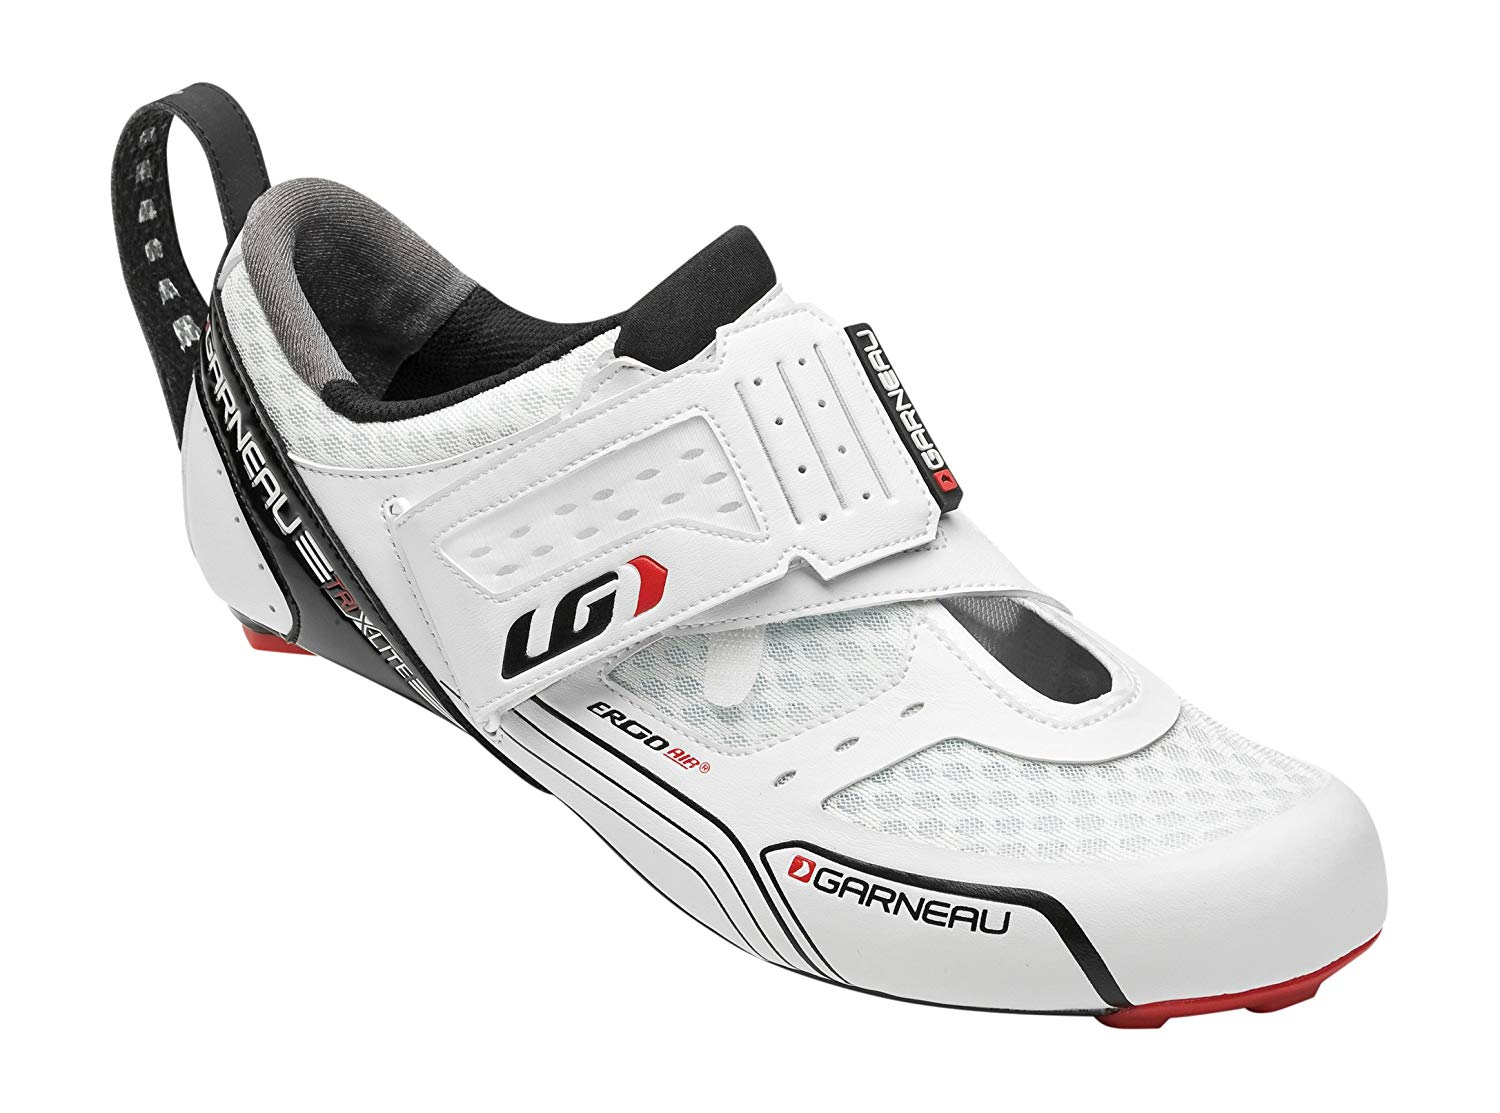 Tri-X Lite II - Here is a high-performance triathlon shoe designed to take you from the first to the second transition zone as fast as possible. The brand-new Tri X-Lite II is stiffer and its hook and loop fasteners won't loosen after 5 km of riding.